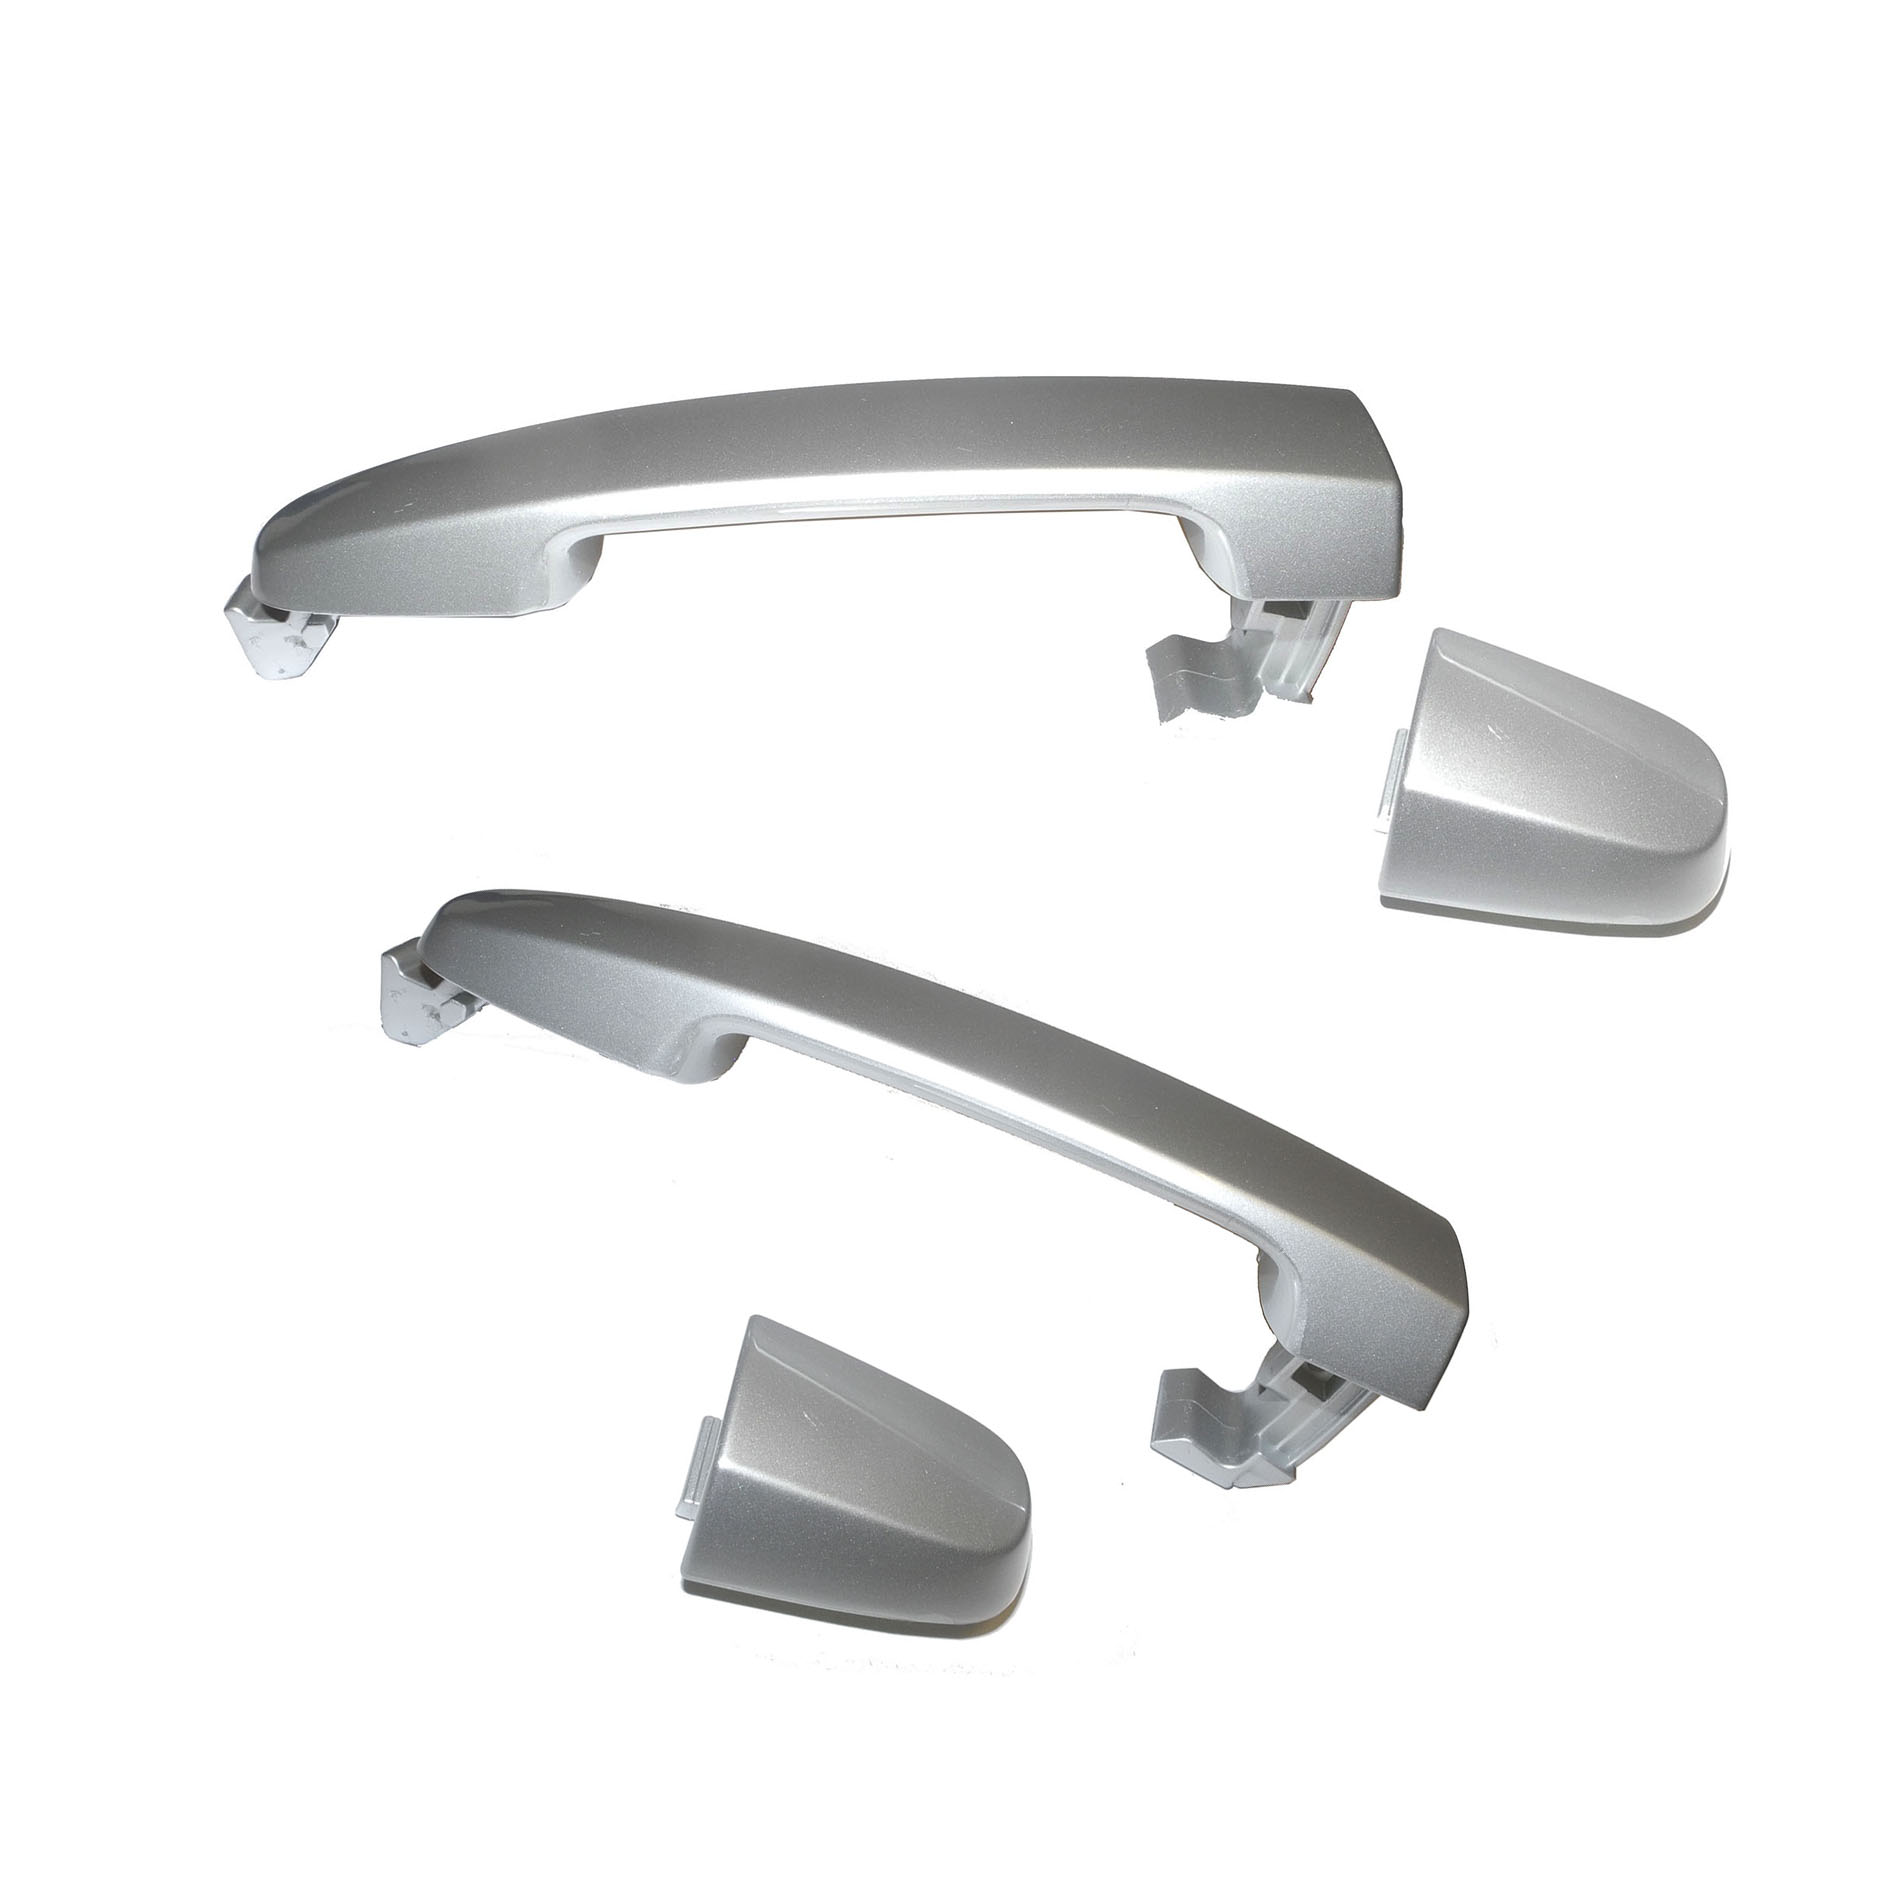 Outer Door Handle Rear For TOYOTA Camry Alpine Silver Metallic 199 DS523  02-06